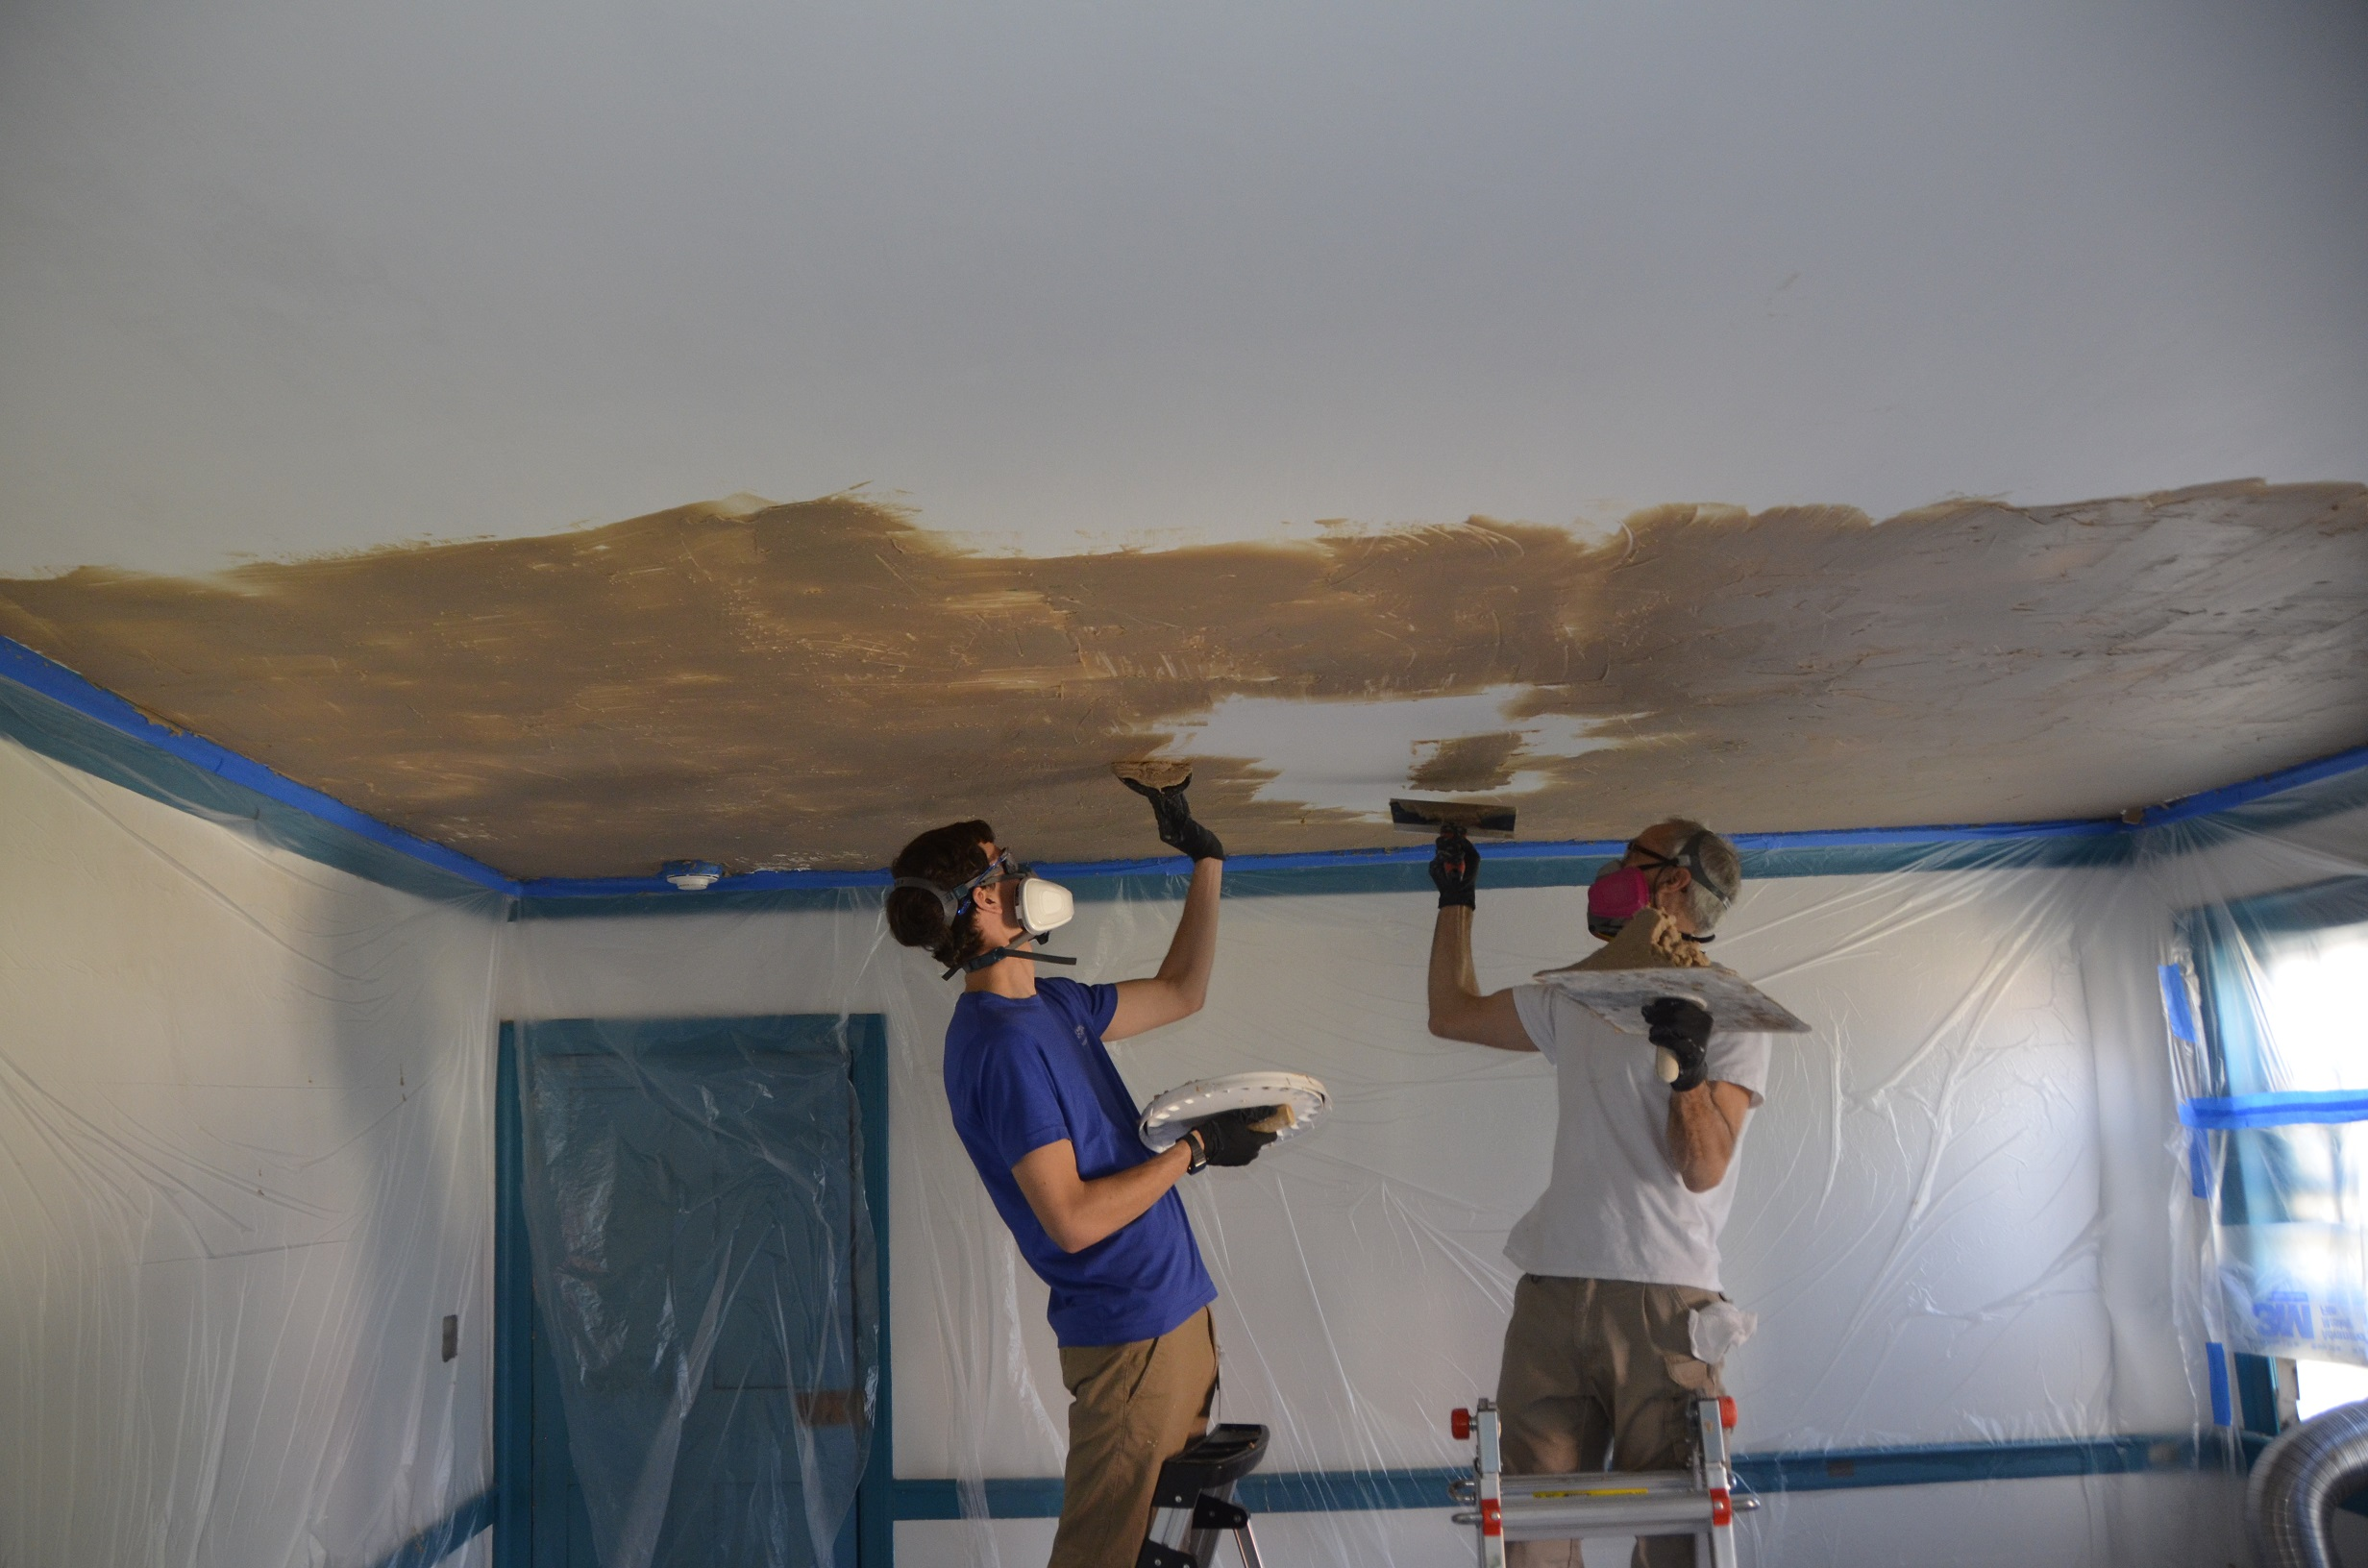 Preservation Specialist, Eric Litchford, and Conservation Specialist, Andy Compton, apply a stripping agent to the Blue Room ceiling.